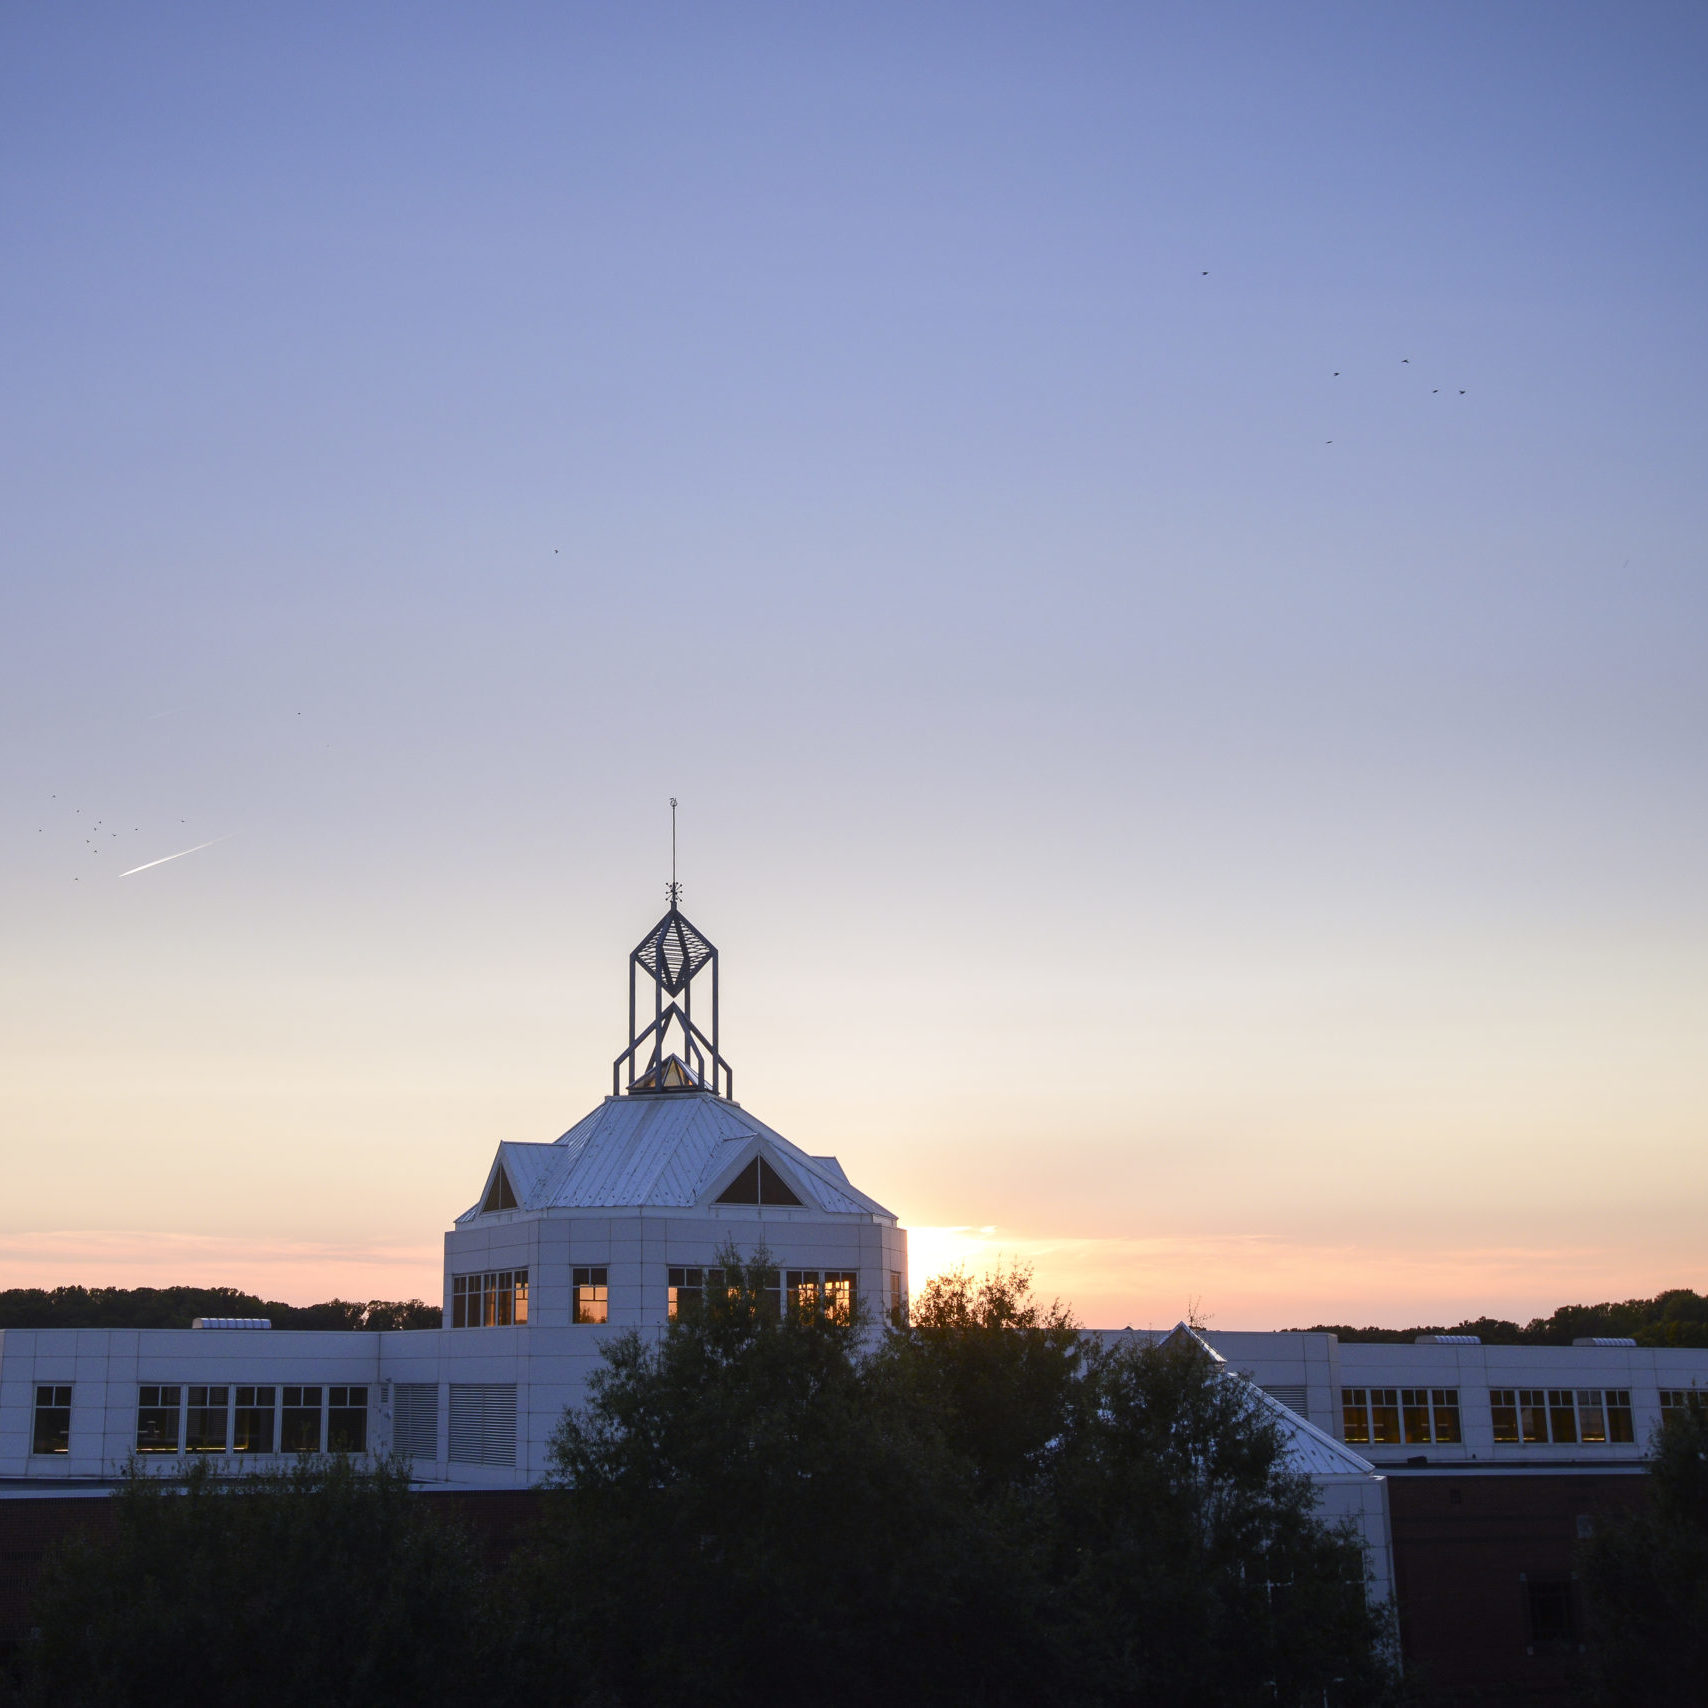 Johnson Center sunset. Photo by Evan Cantwell/Creative Services/George Mason University